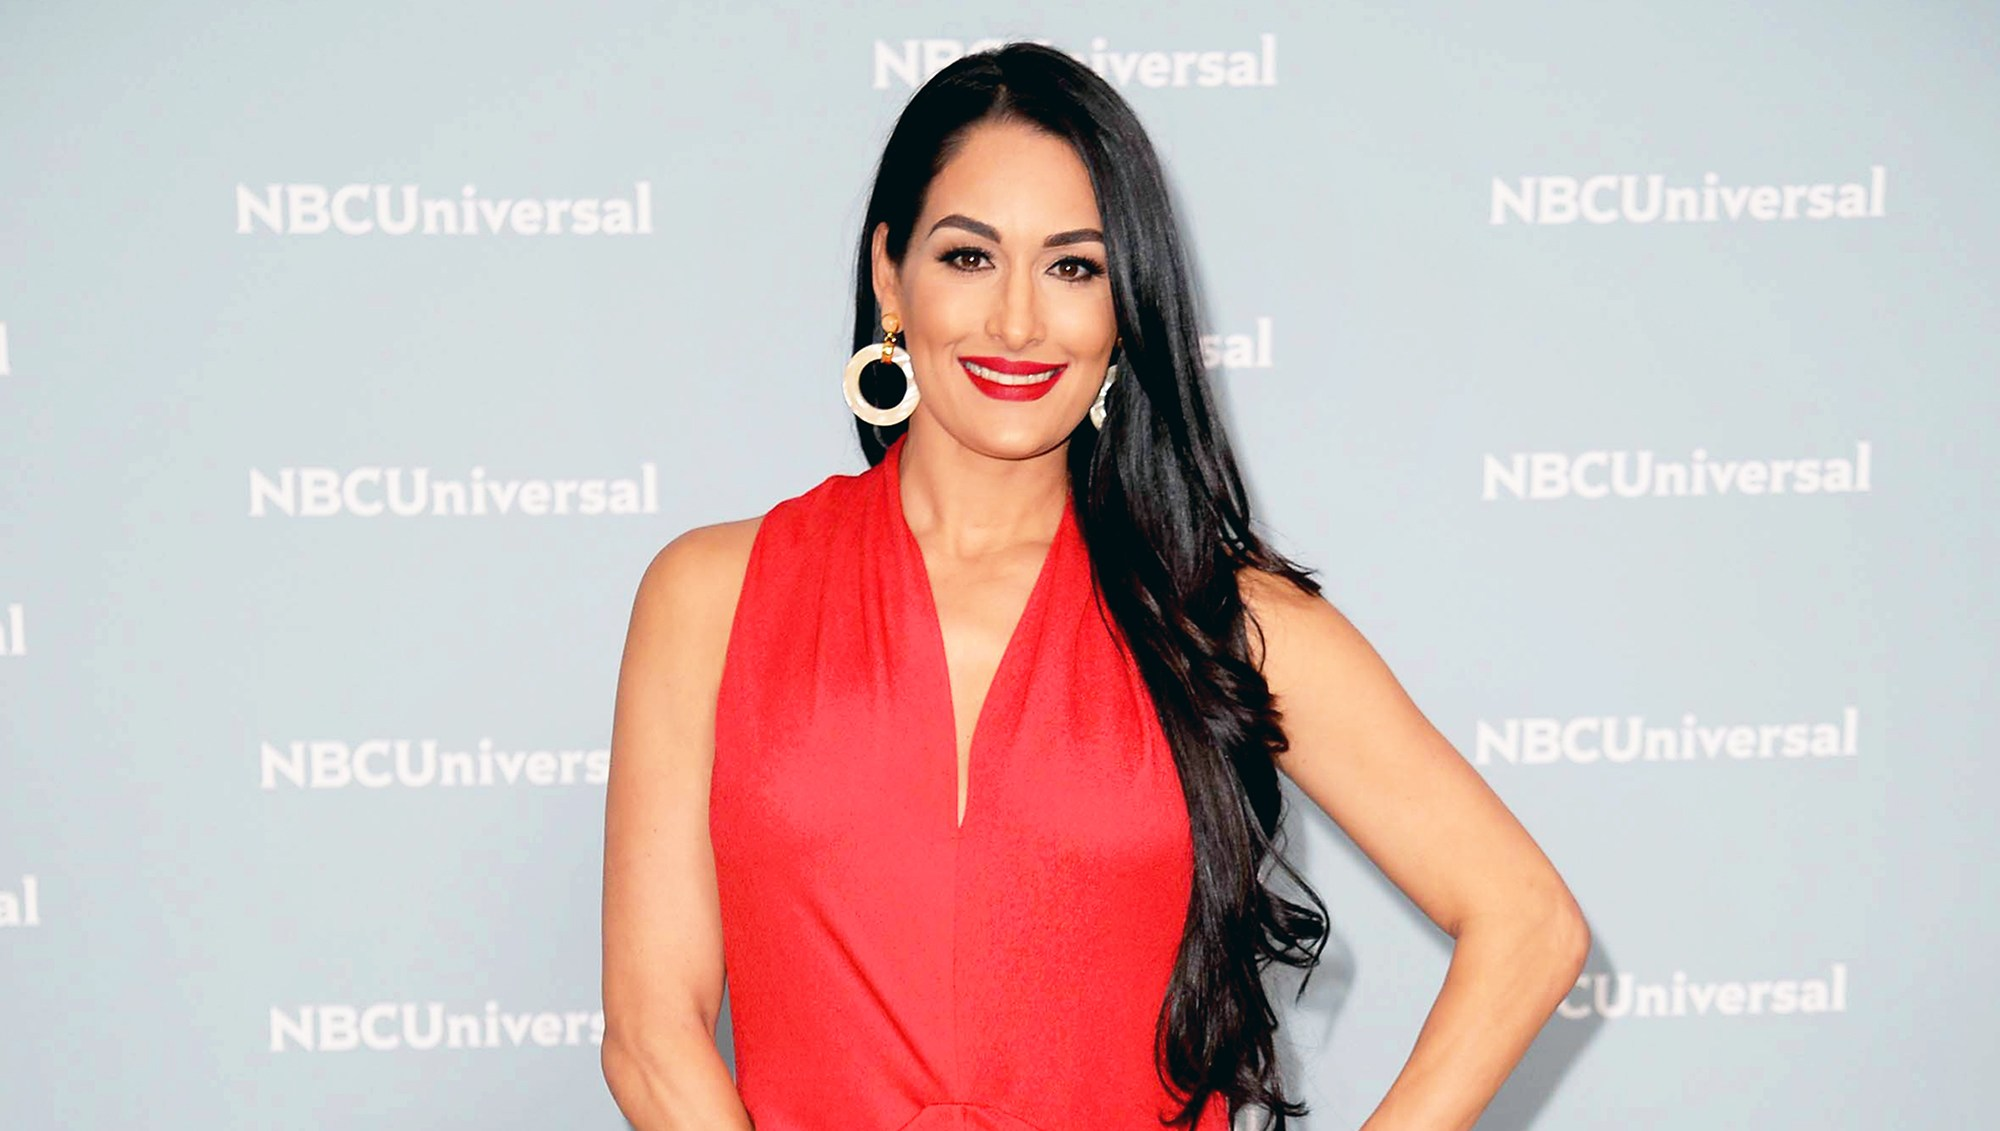 Nikki Bella attends the 2018 NBCUniversal Upfront Presentation at Rockefeller Center on May 14, 2018 in New York City.